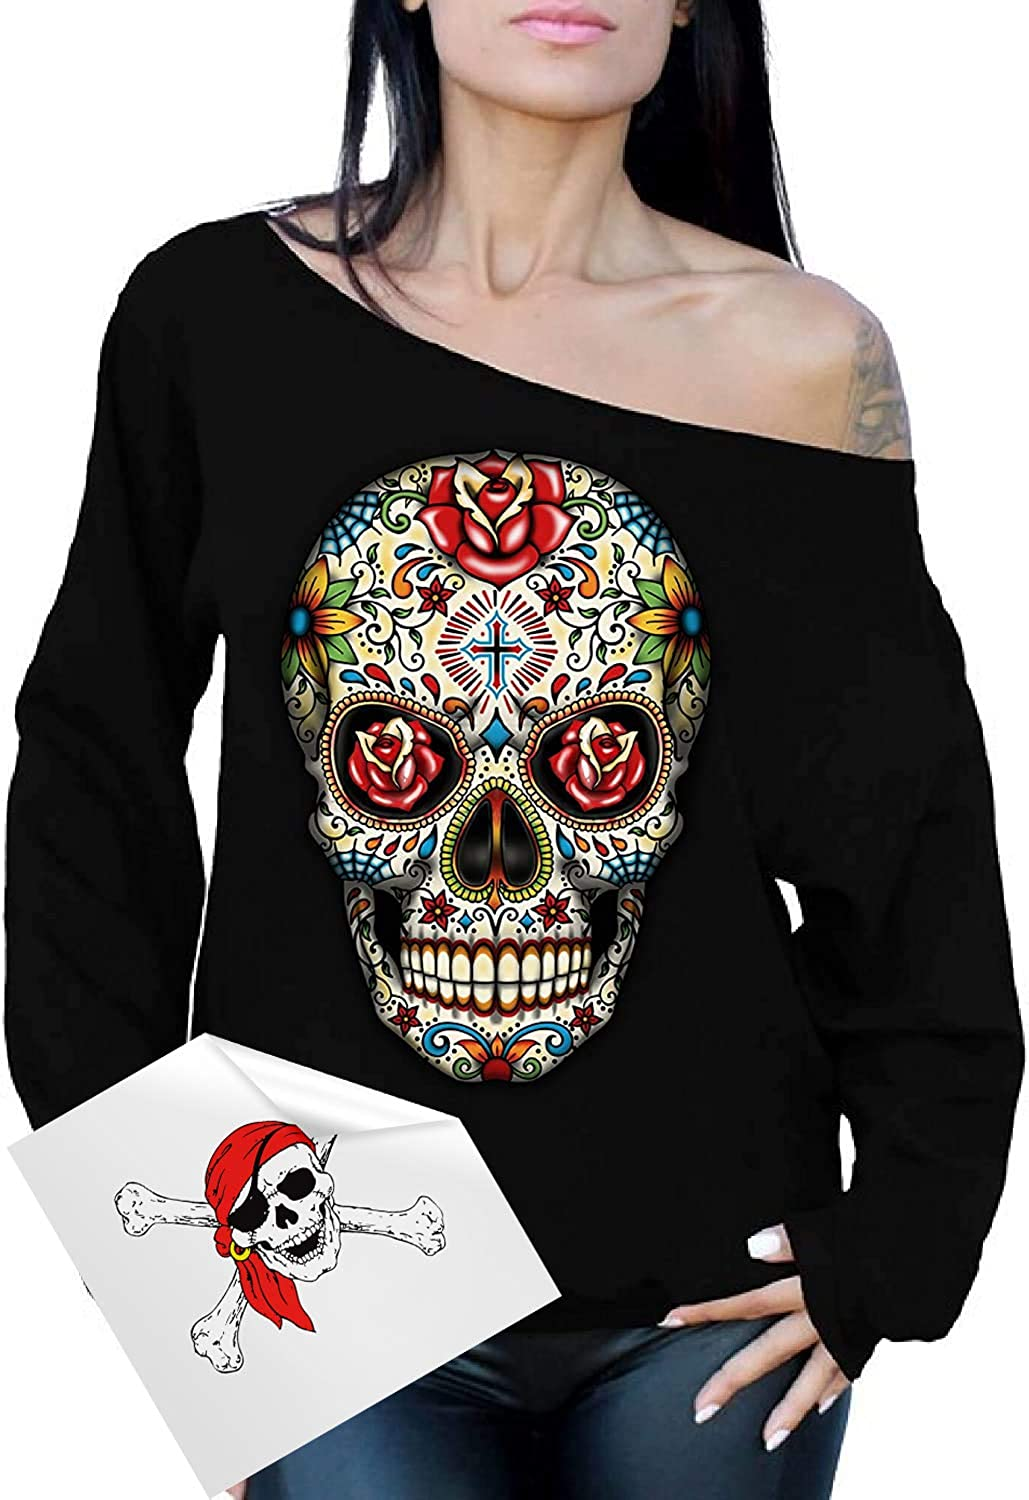 Awkward Styles Skull Sweatshirts for Women - Day of The Dead Halloween Off The Shoulder Top + Sticker Gift